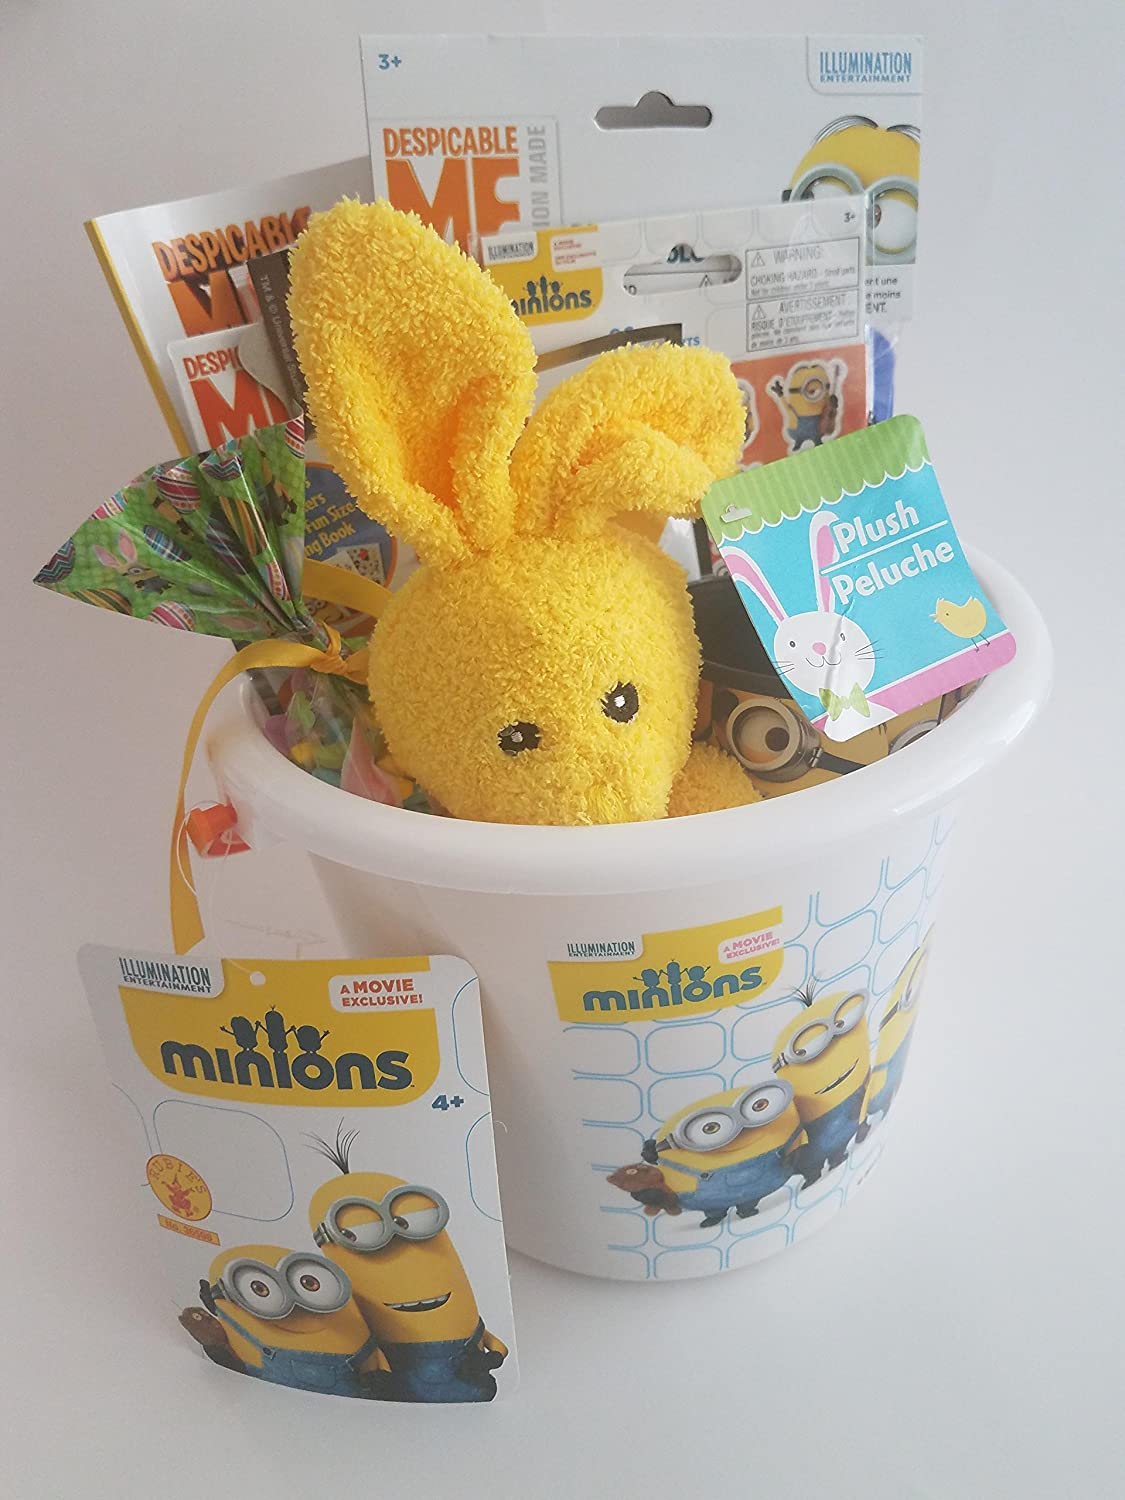 Amazon.com: Greenbriar International Despicable Me Minions Plush Bunny Yellow Party Favor Basket: Toys & Games